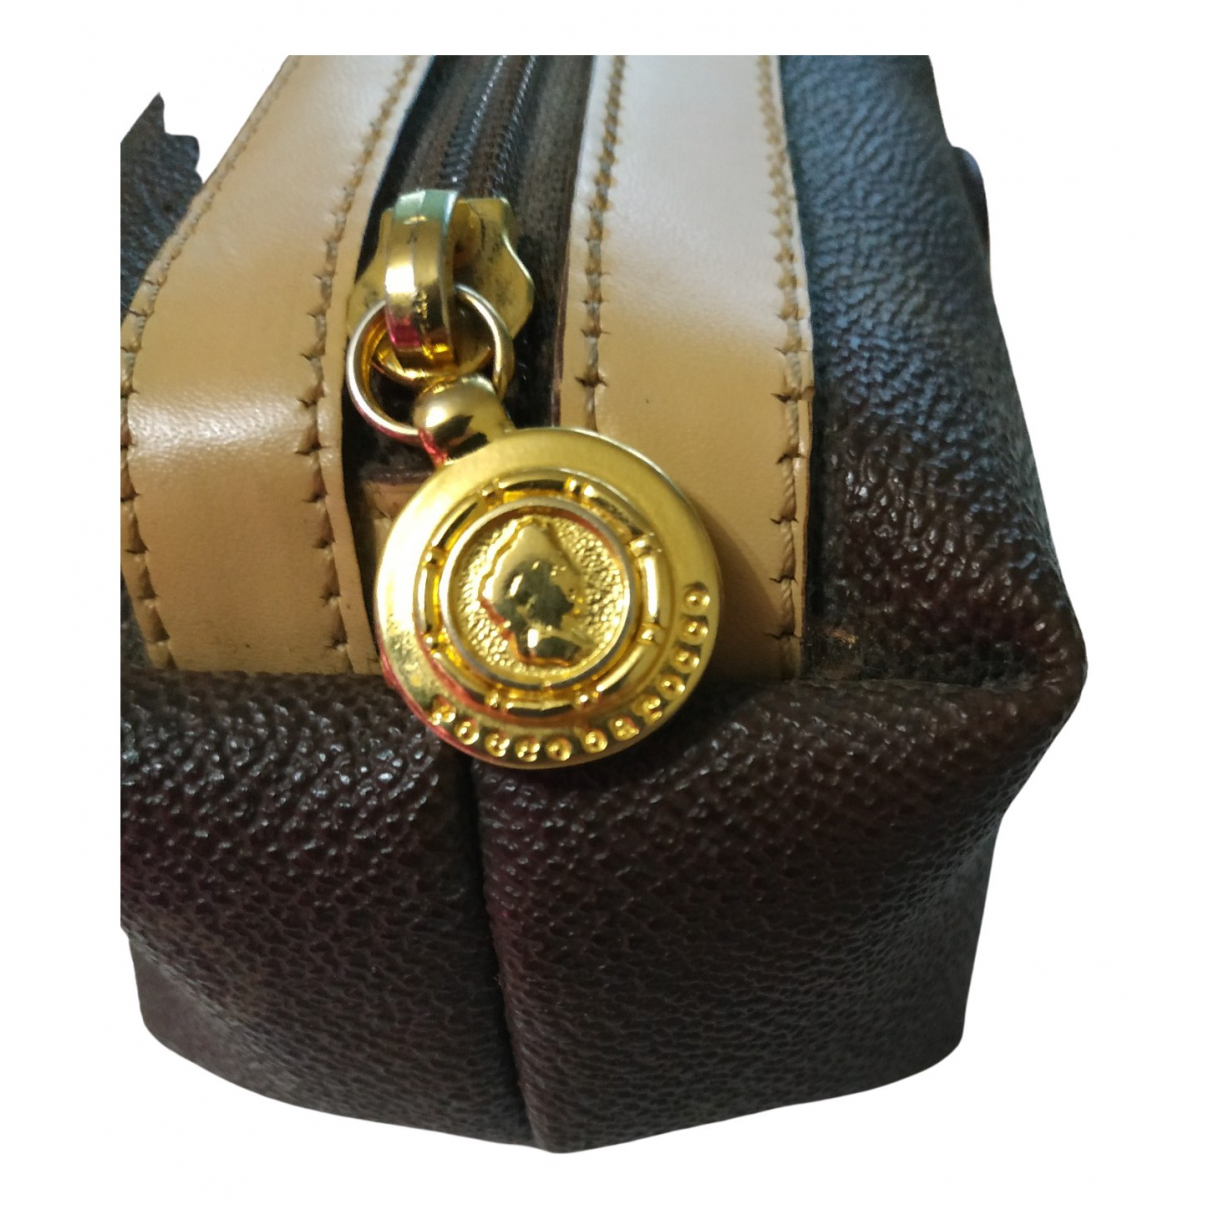 Paco Rabanne N Brown Leather Purses, wallet & cases for Women N